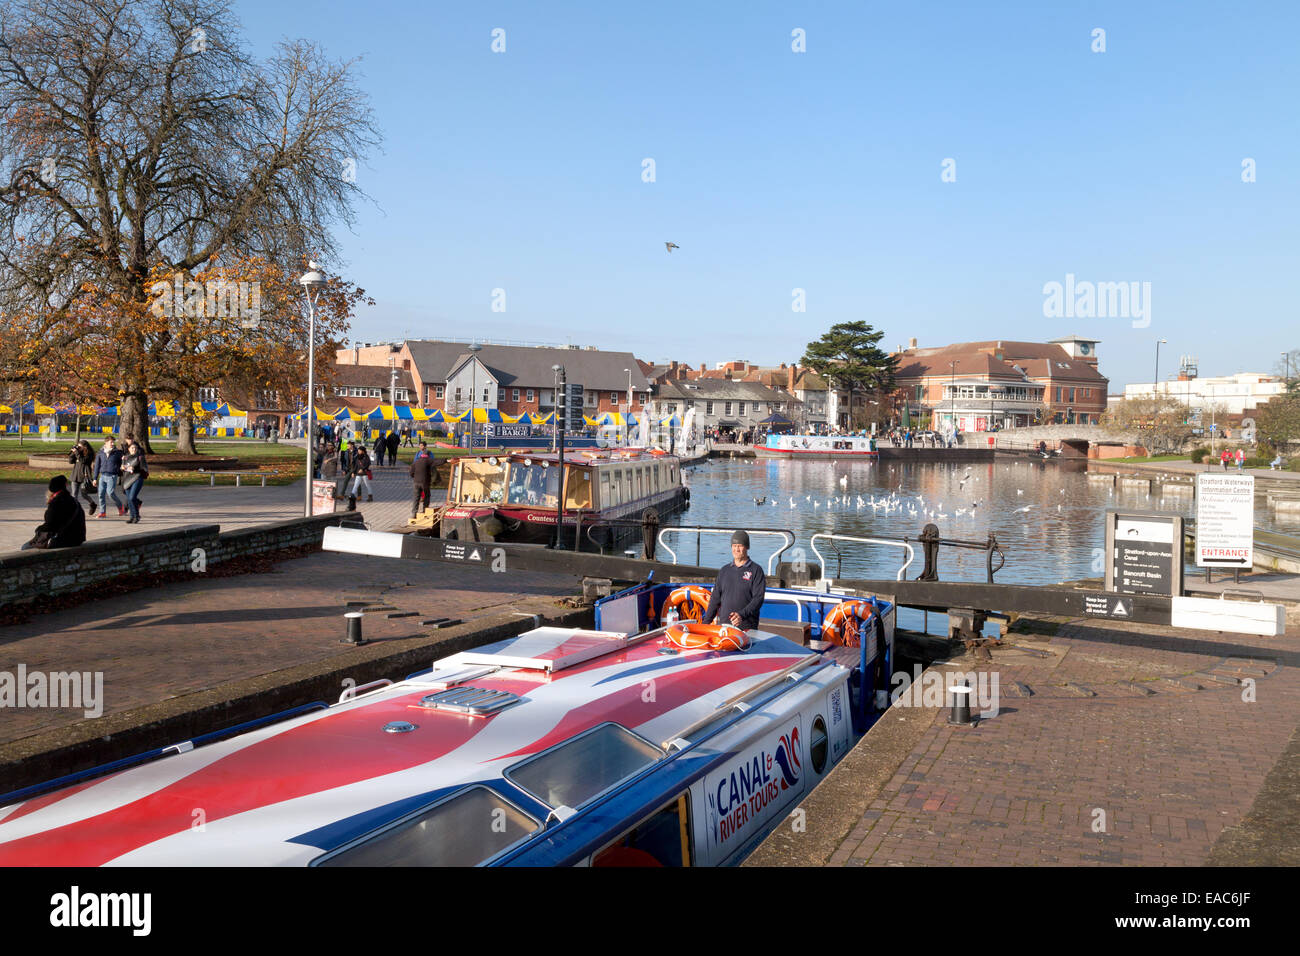 Narrow boats in the Stratford upon Avon canal in the town centre, Stratford upon Avon, Warwickshire, UK - Stock Image